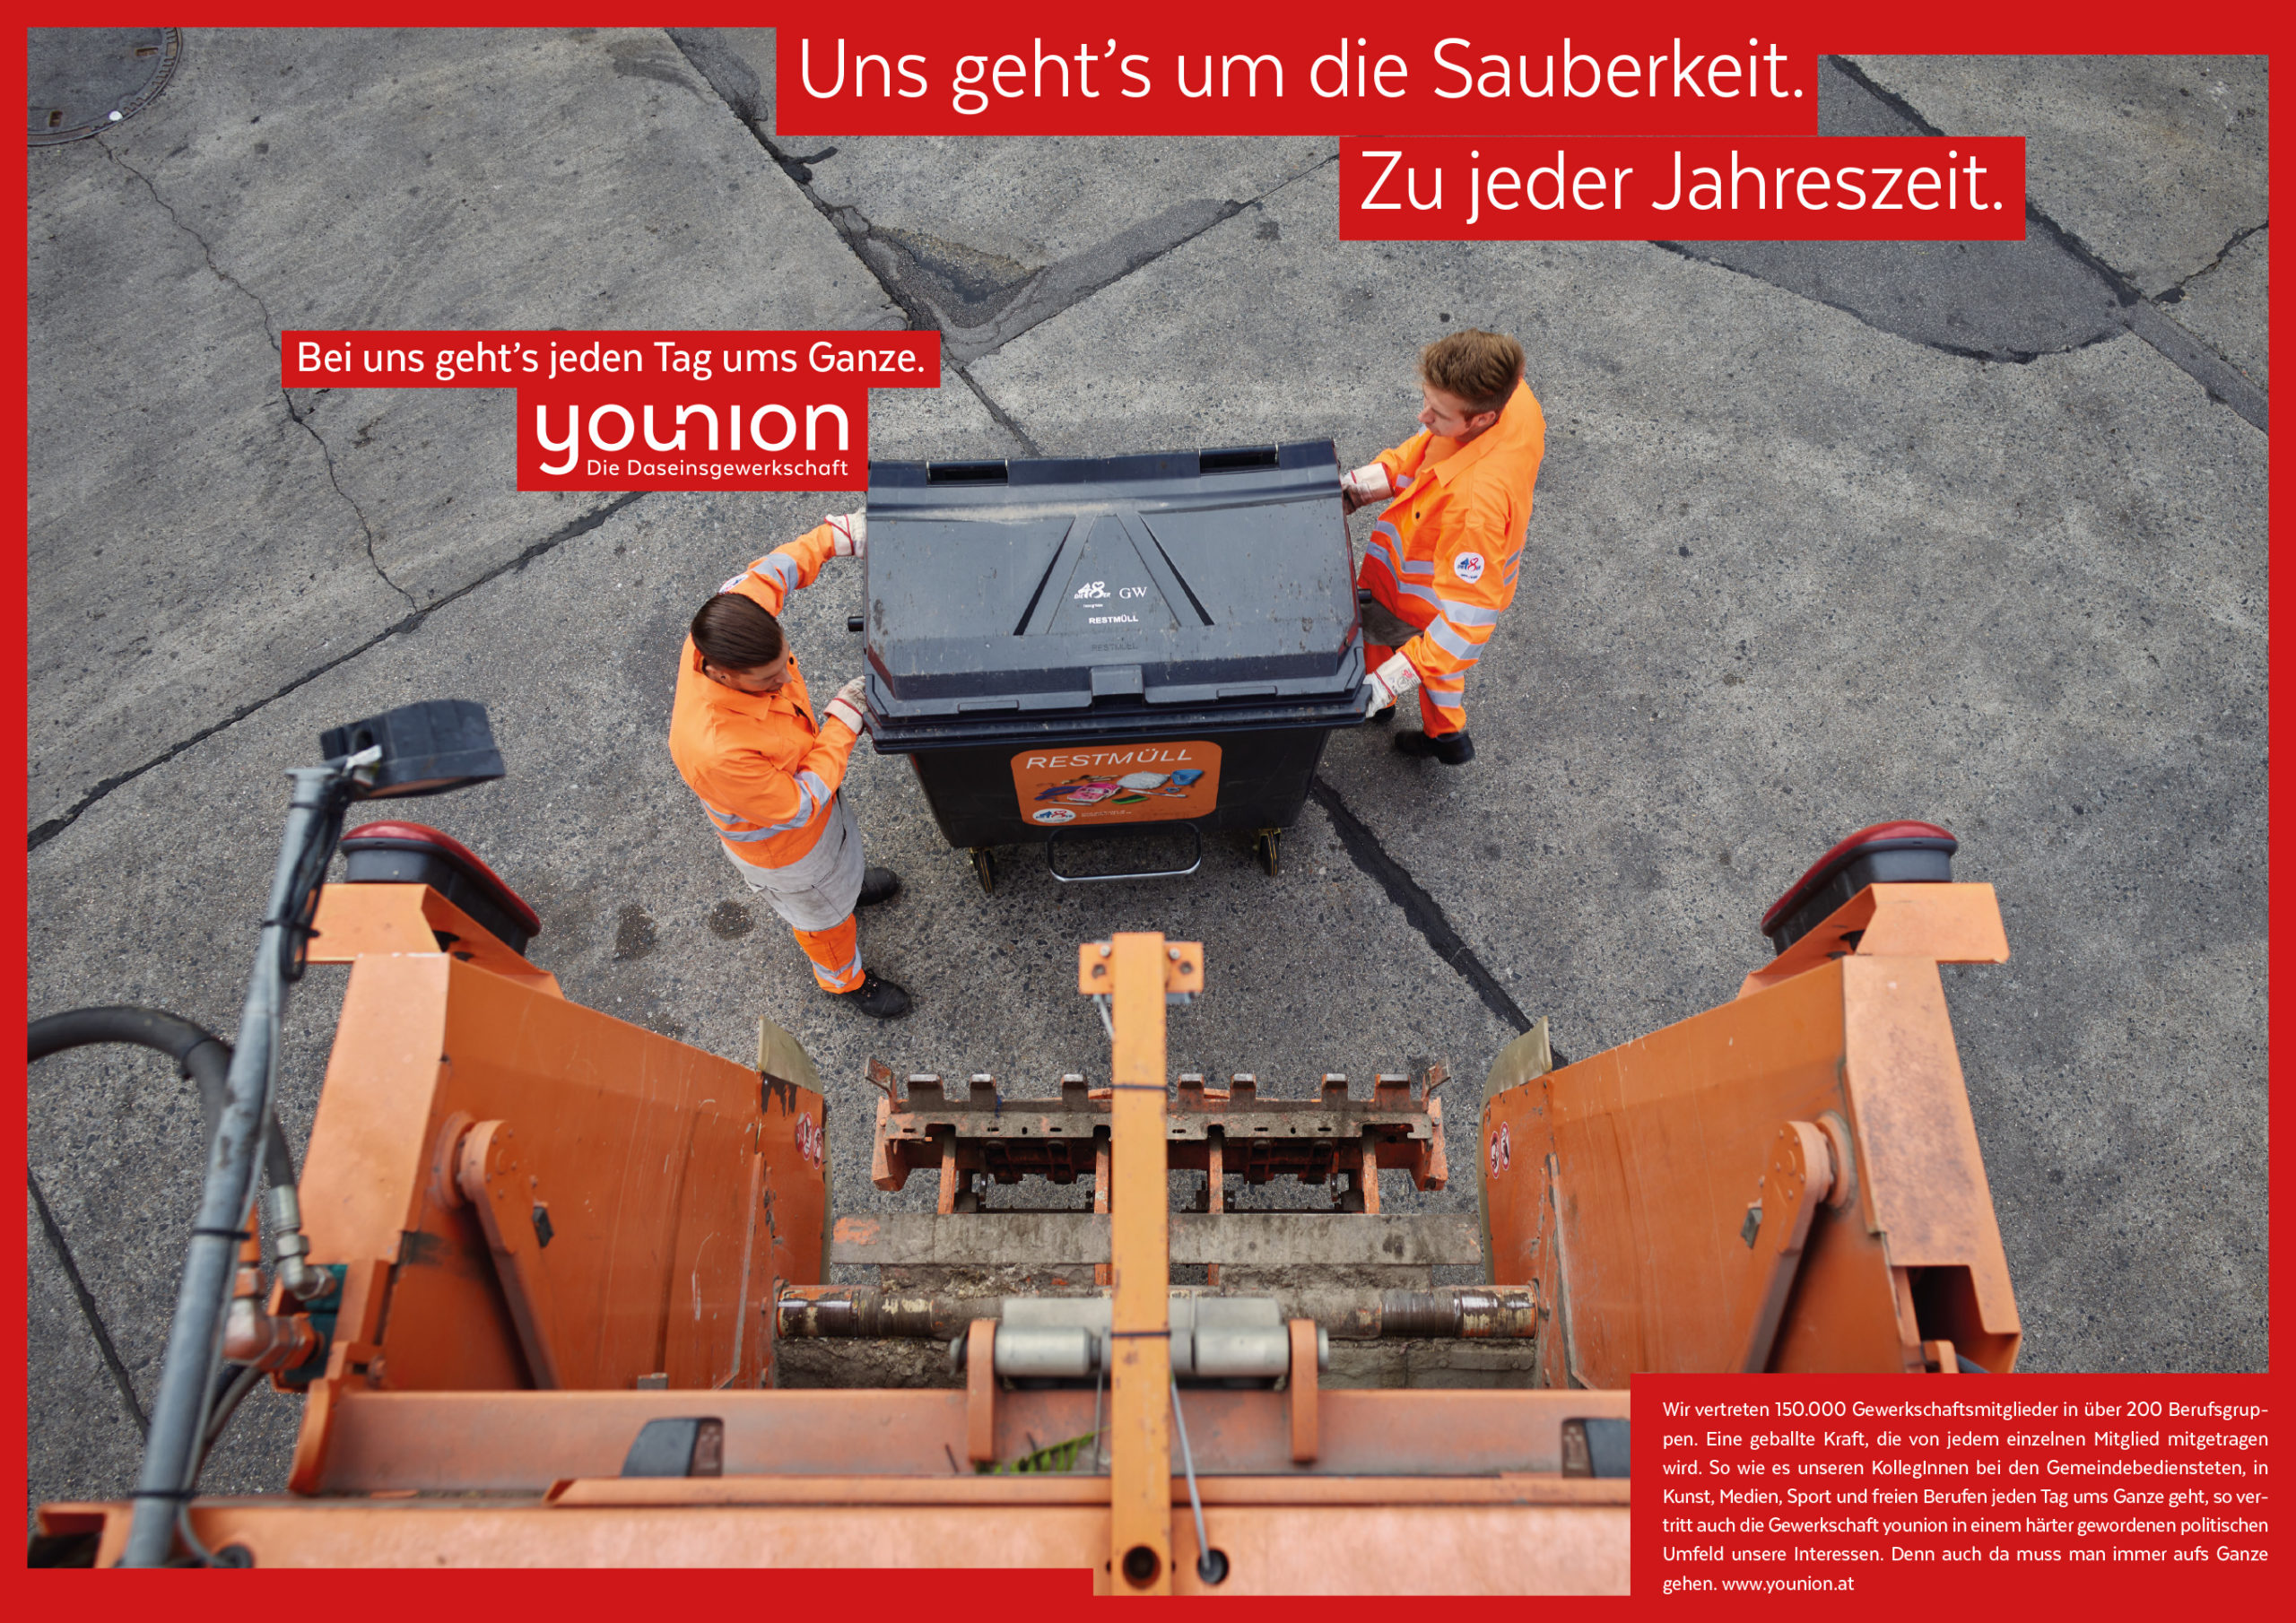 Younion-Kampagne-Sujet-6-scaled.jpg